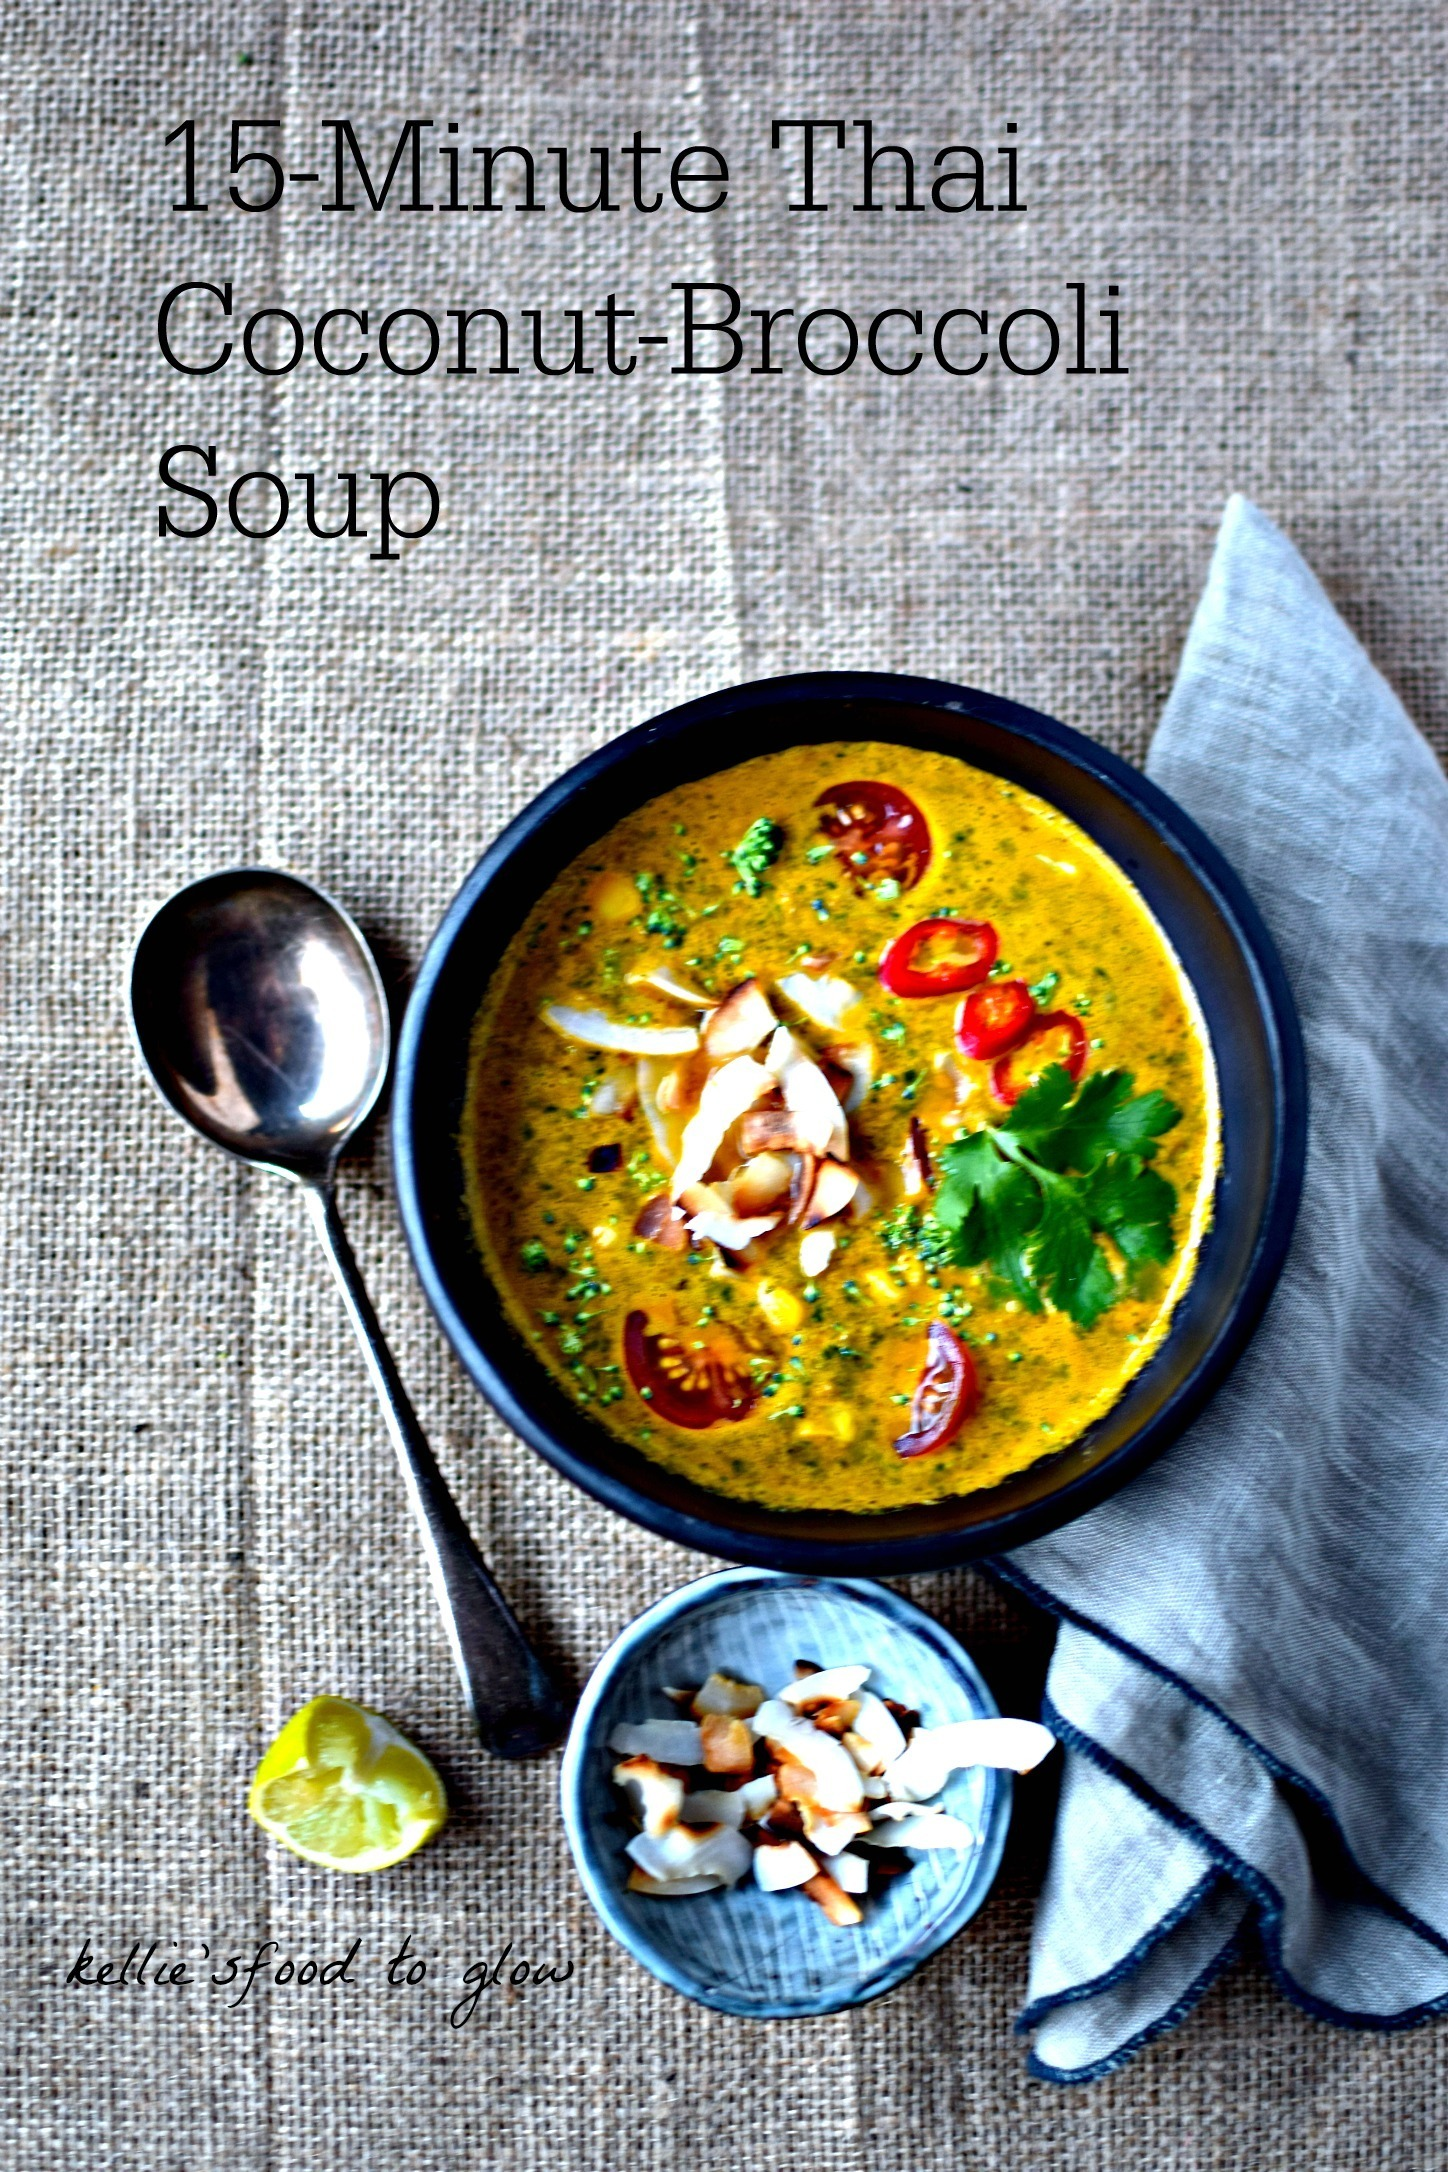 15-Minute Thai Coconut-Broccoli Soup Recipe